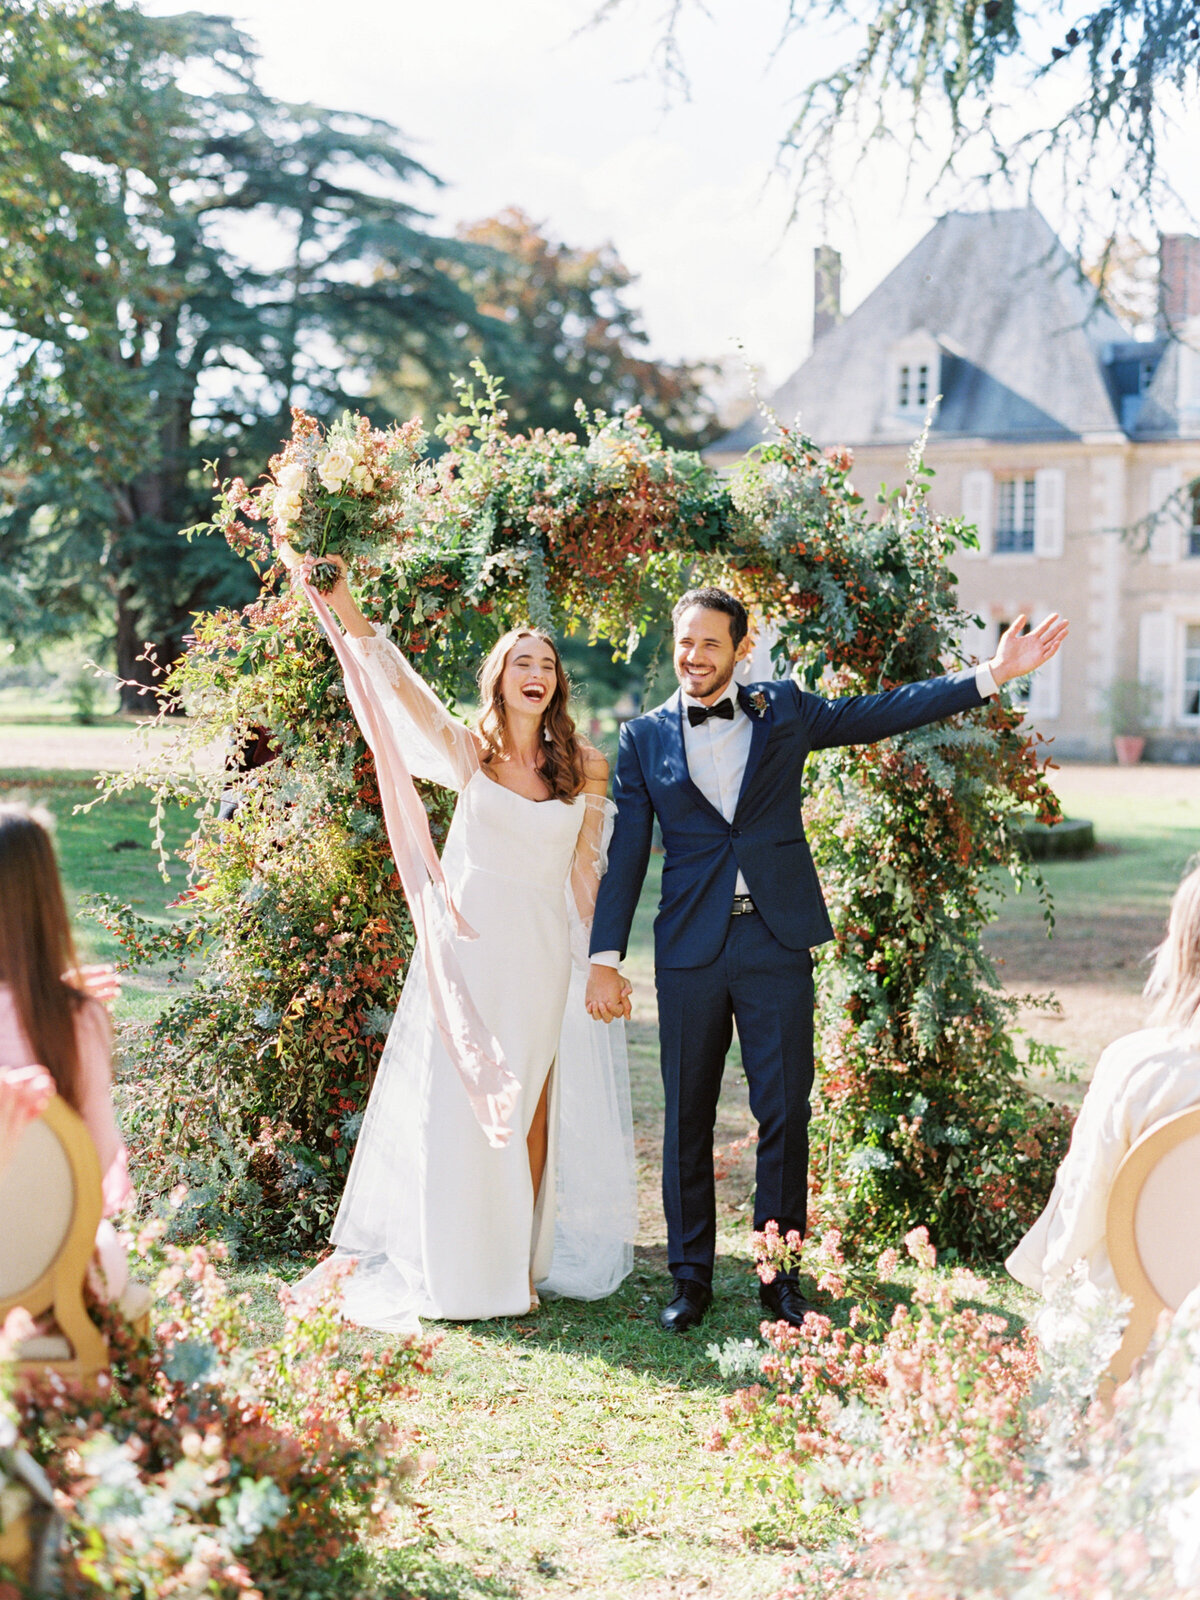 chateau-bouthonvilliers-wedding-paris-wedding-photographer-mackenzie-reiter-photography-1